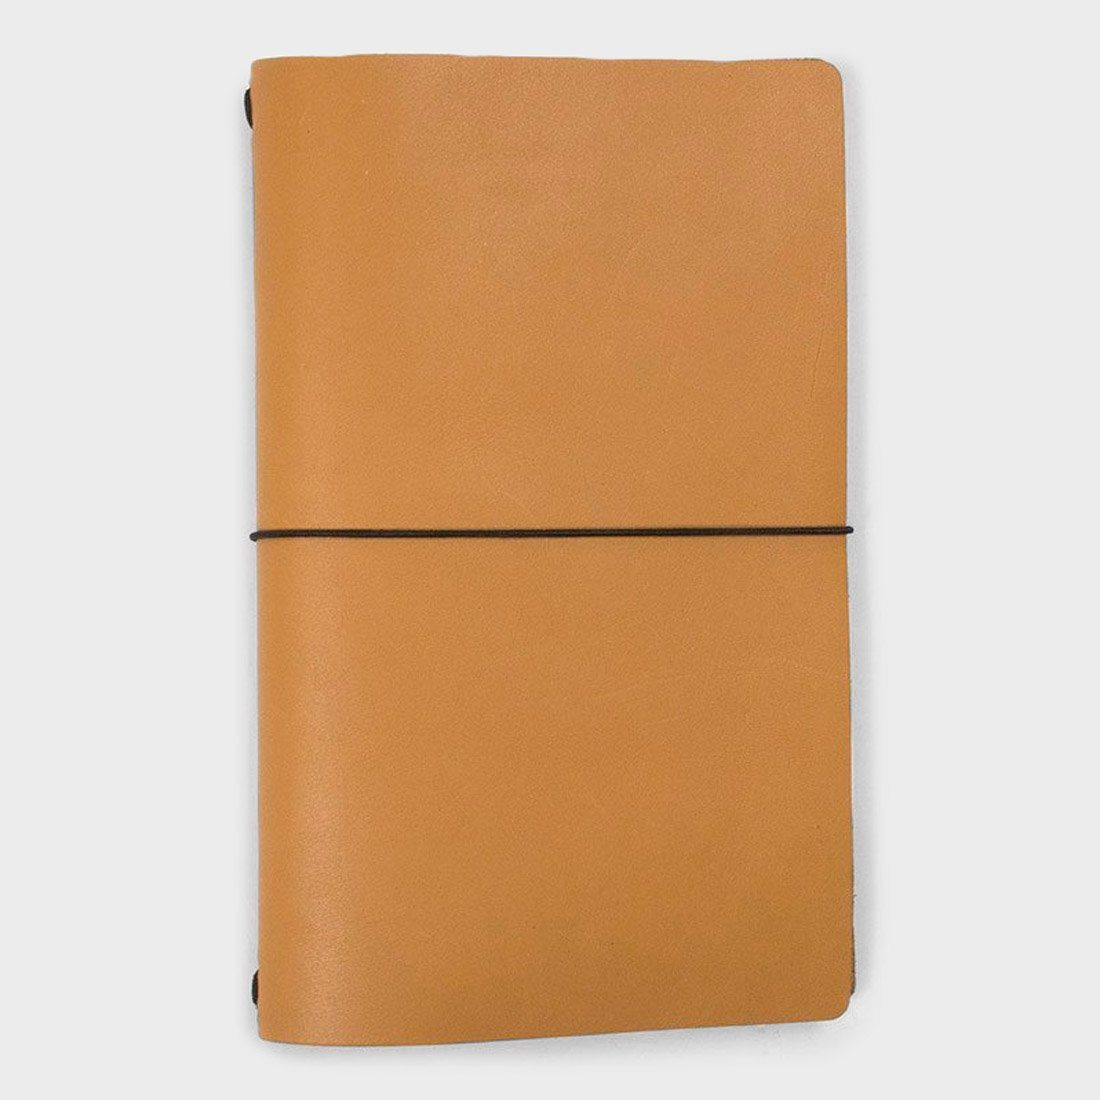 Rustico Expedition Notebook Buckskin